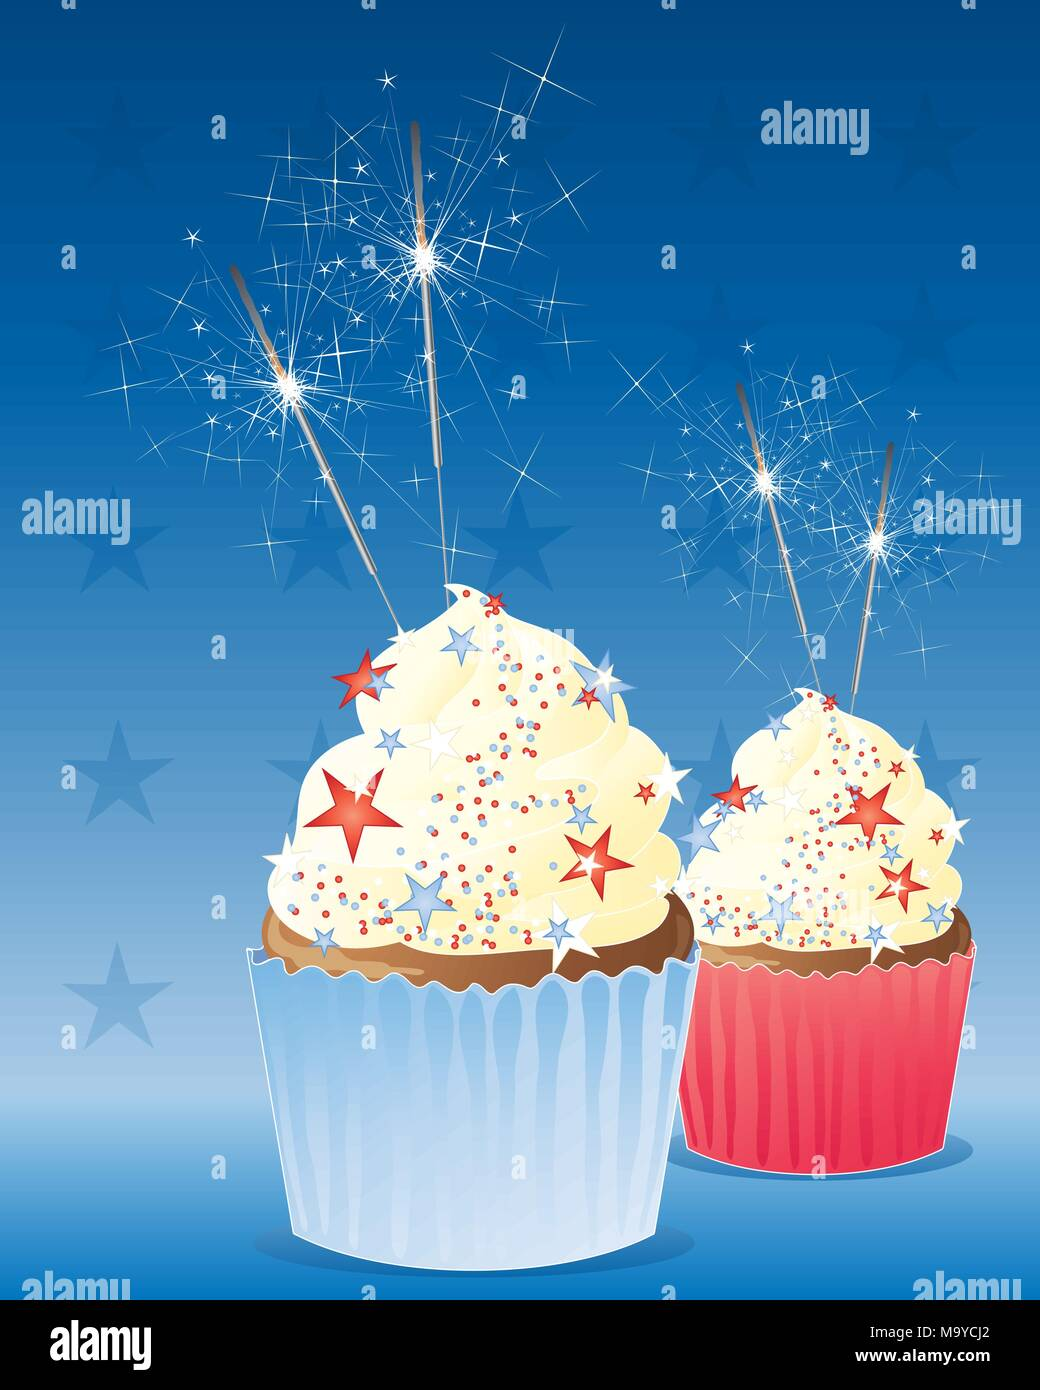 an illustration of two delicious cup cakes decorated to celebrate the fourth of july american independence day with frosting and sparklers on a deep b - Stock Vector